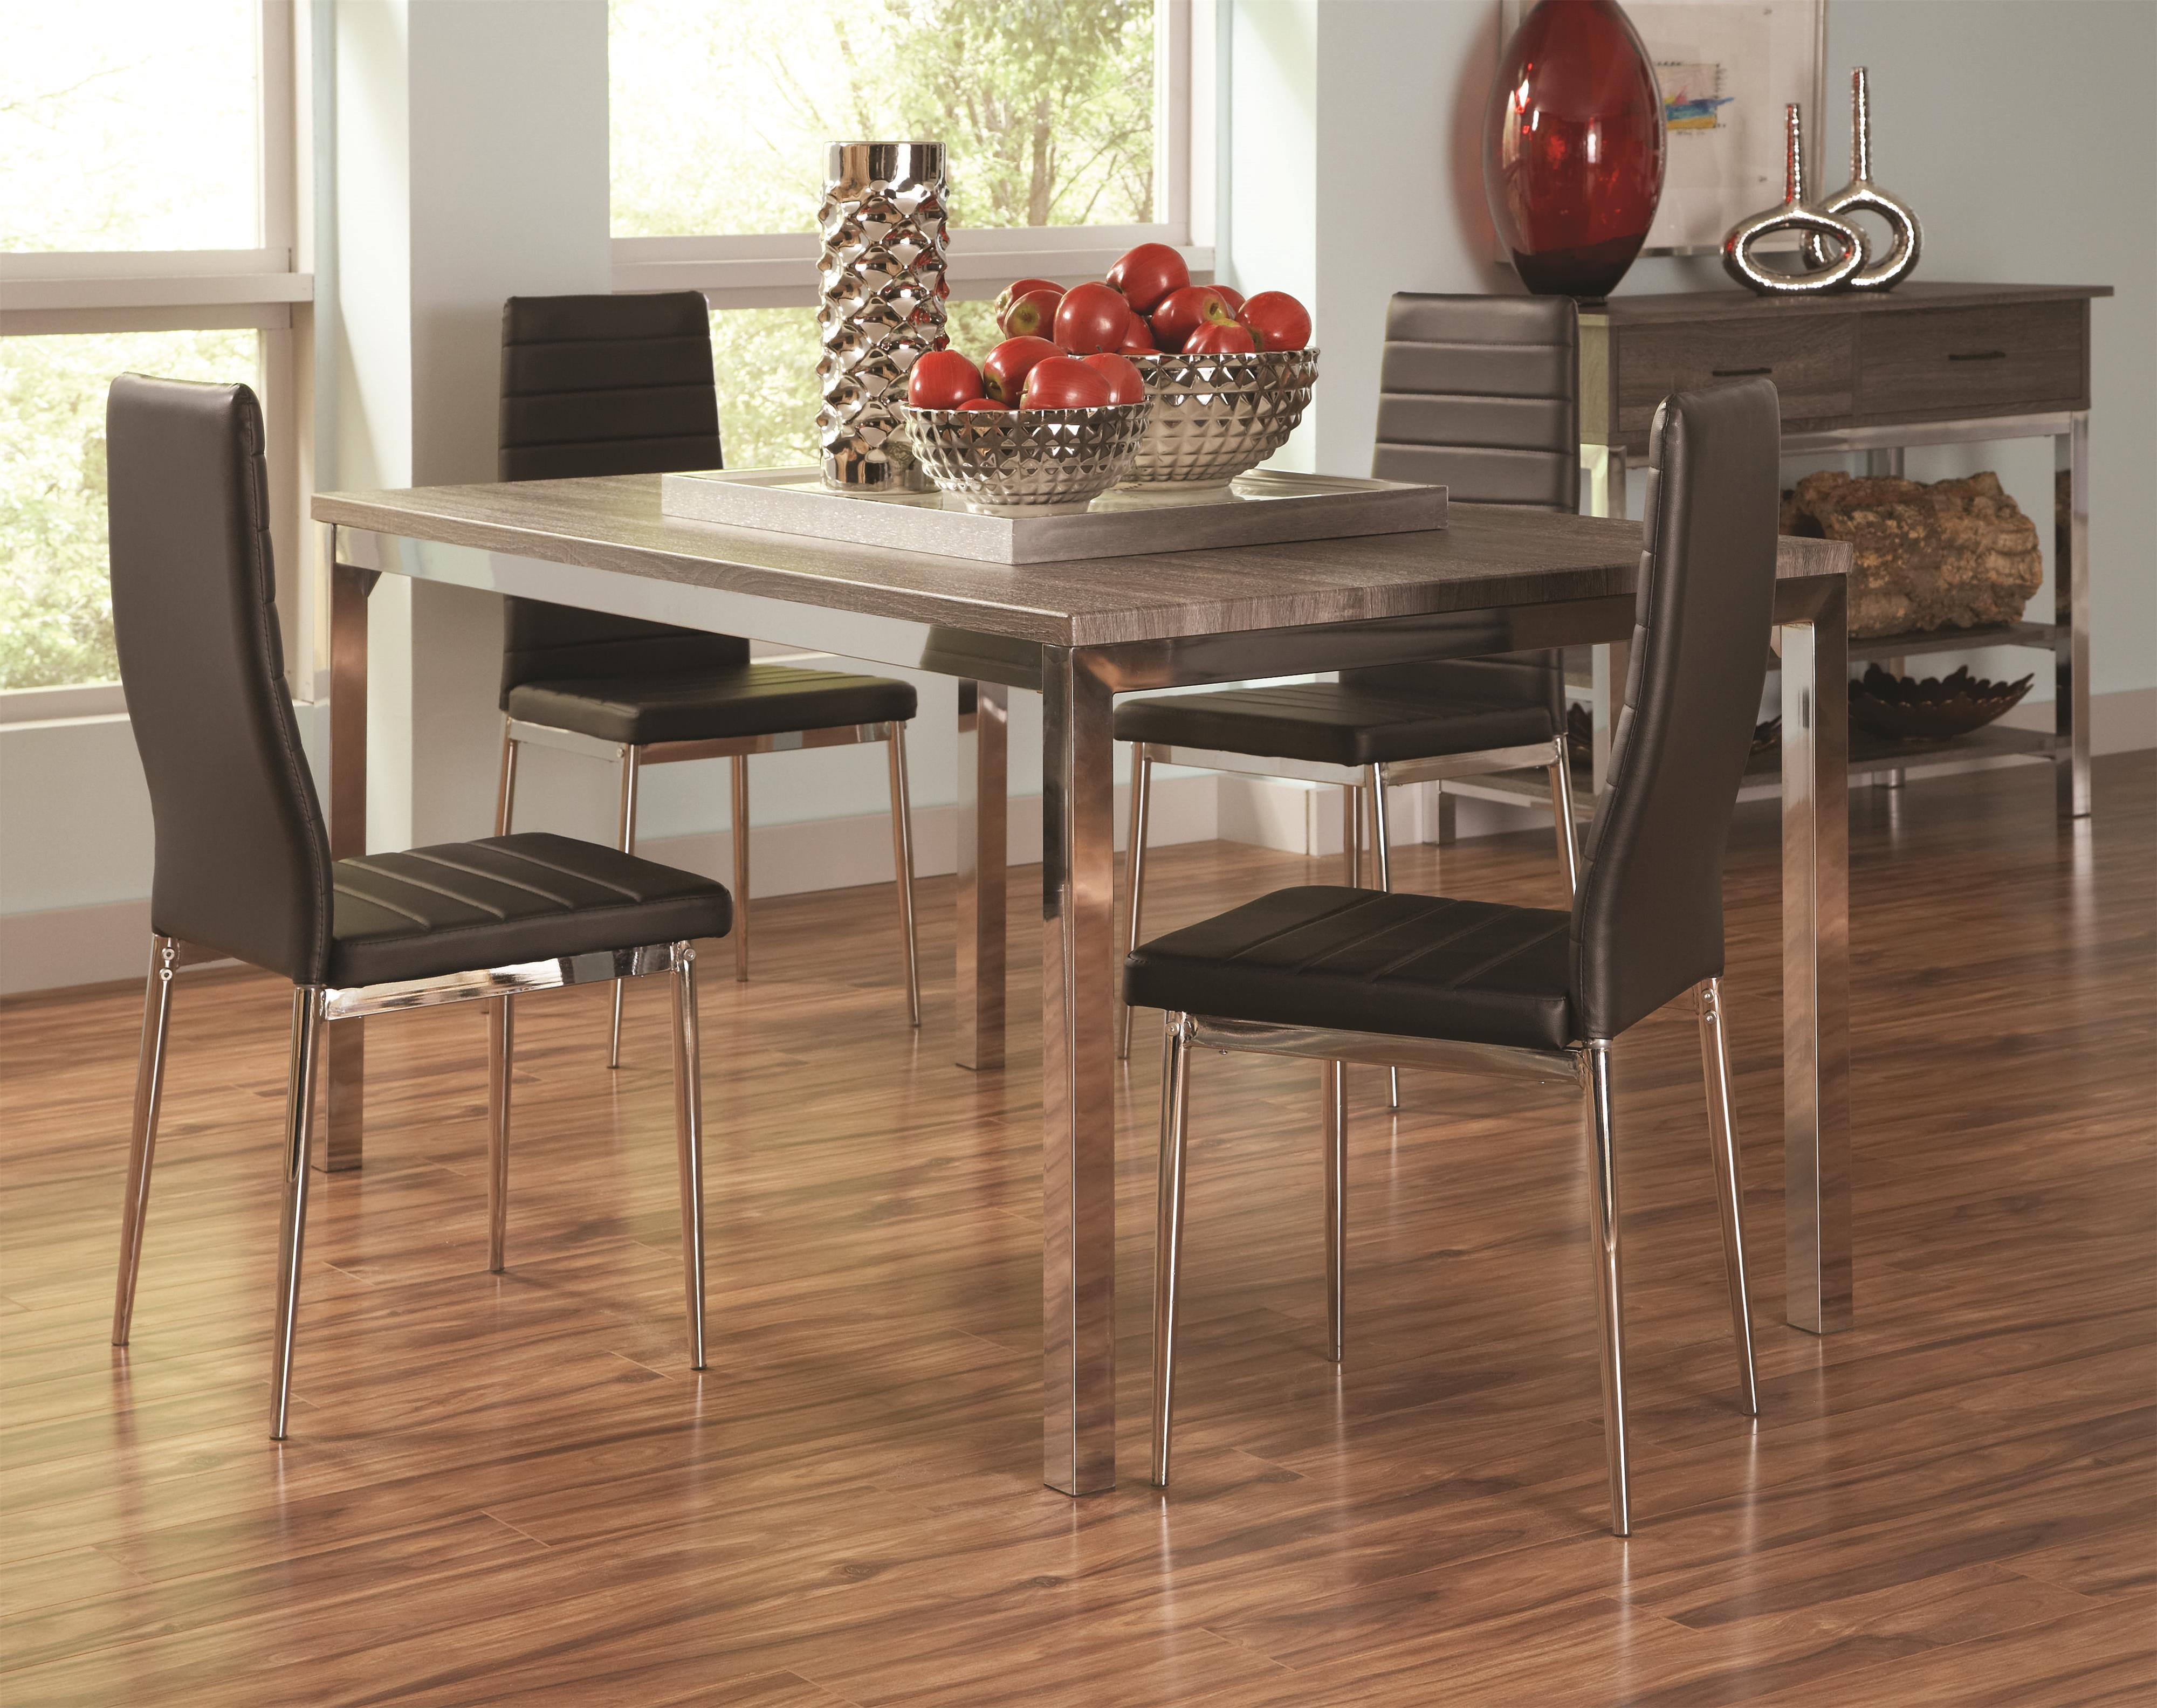 Coaster Eldridge Casual Dining Room Group - Item Number: 12 Dining Room Group 3